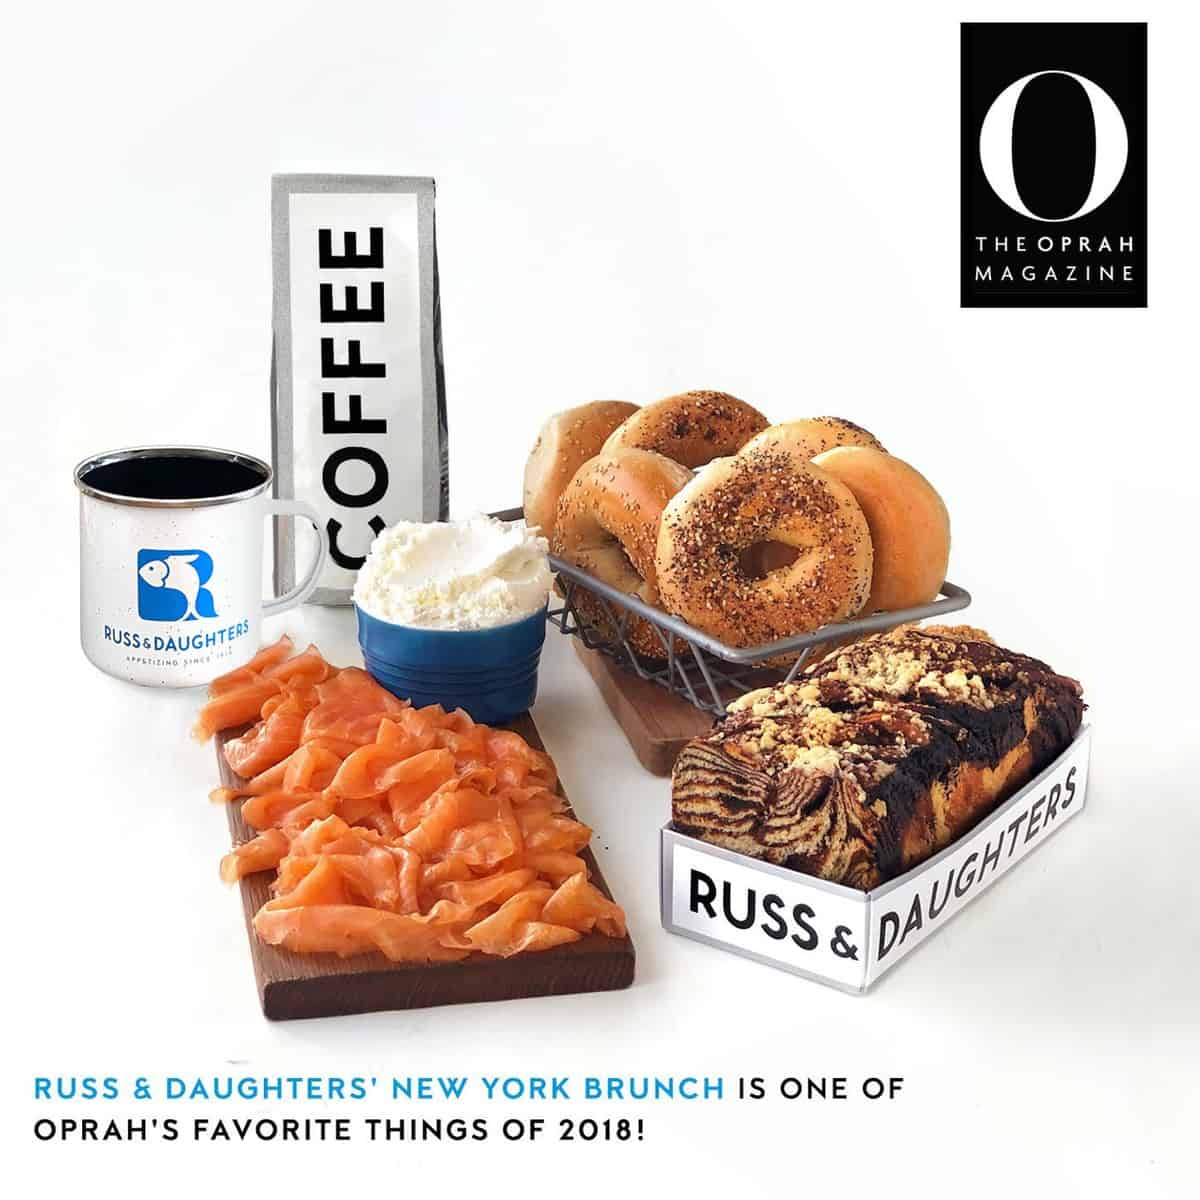 Mailable-Food-Gifts-New-York-Brunch-Russ-Daughters